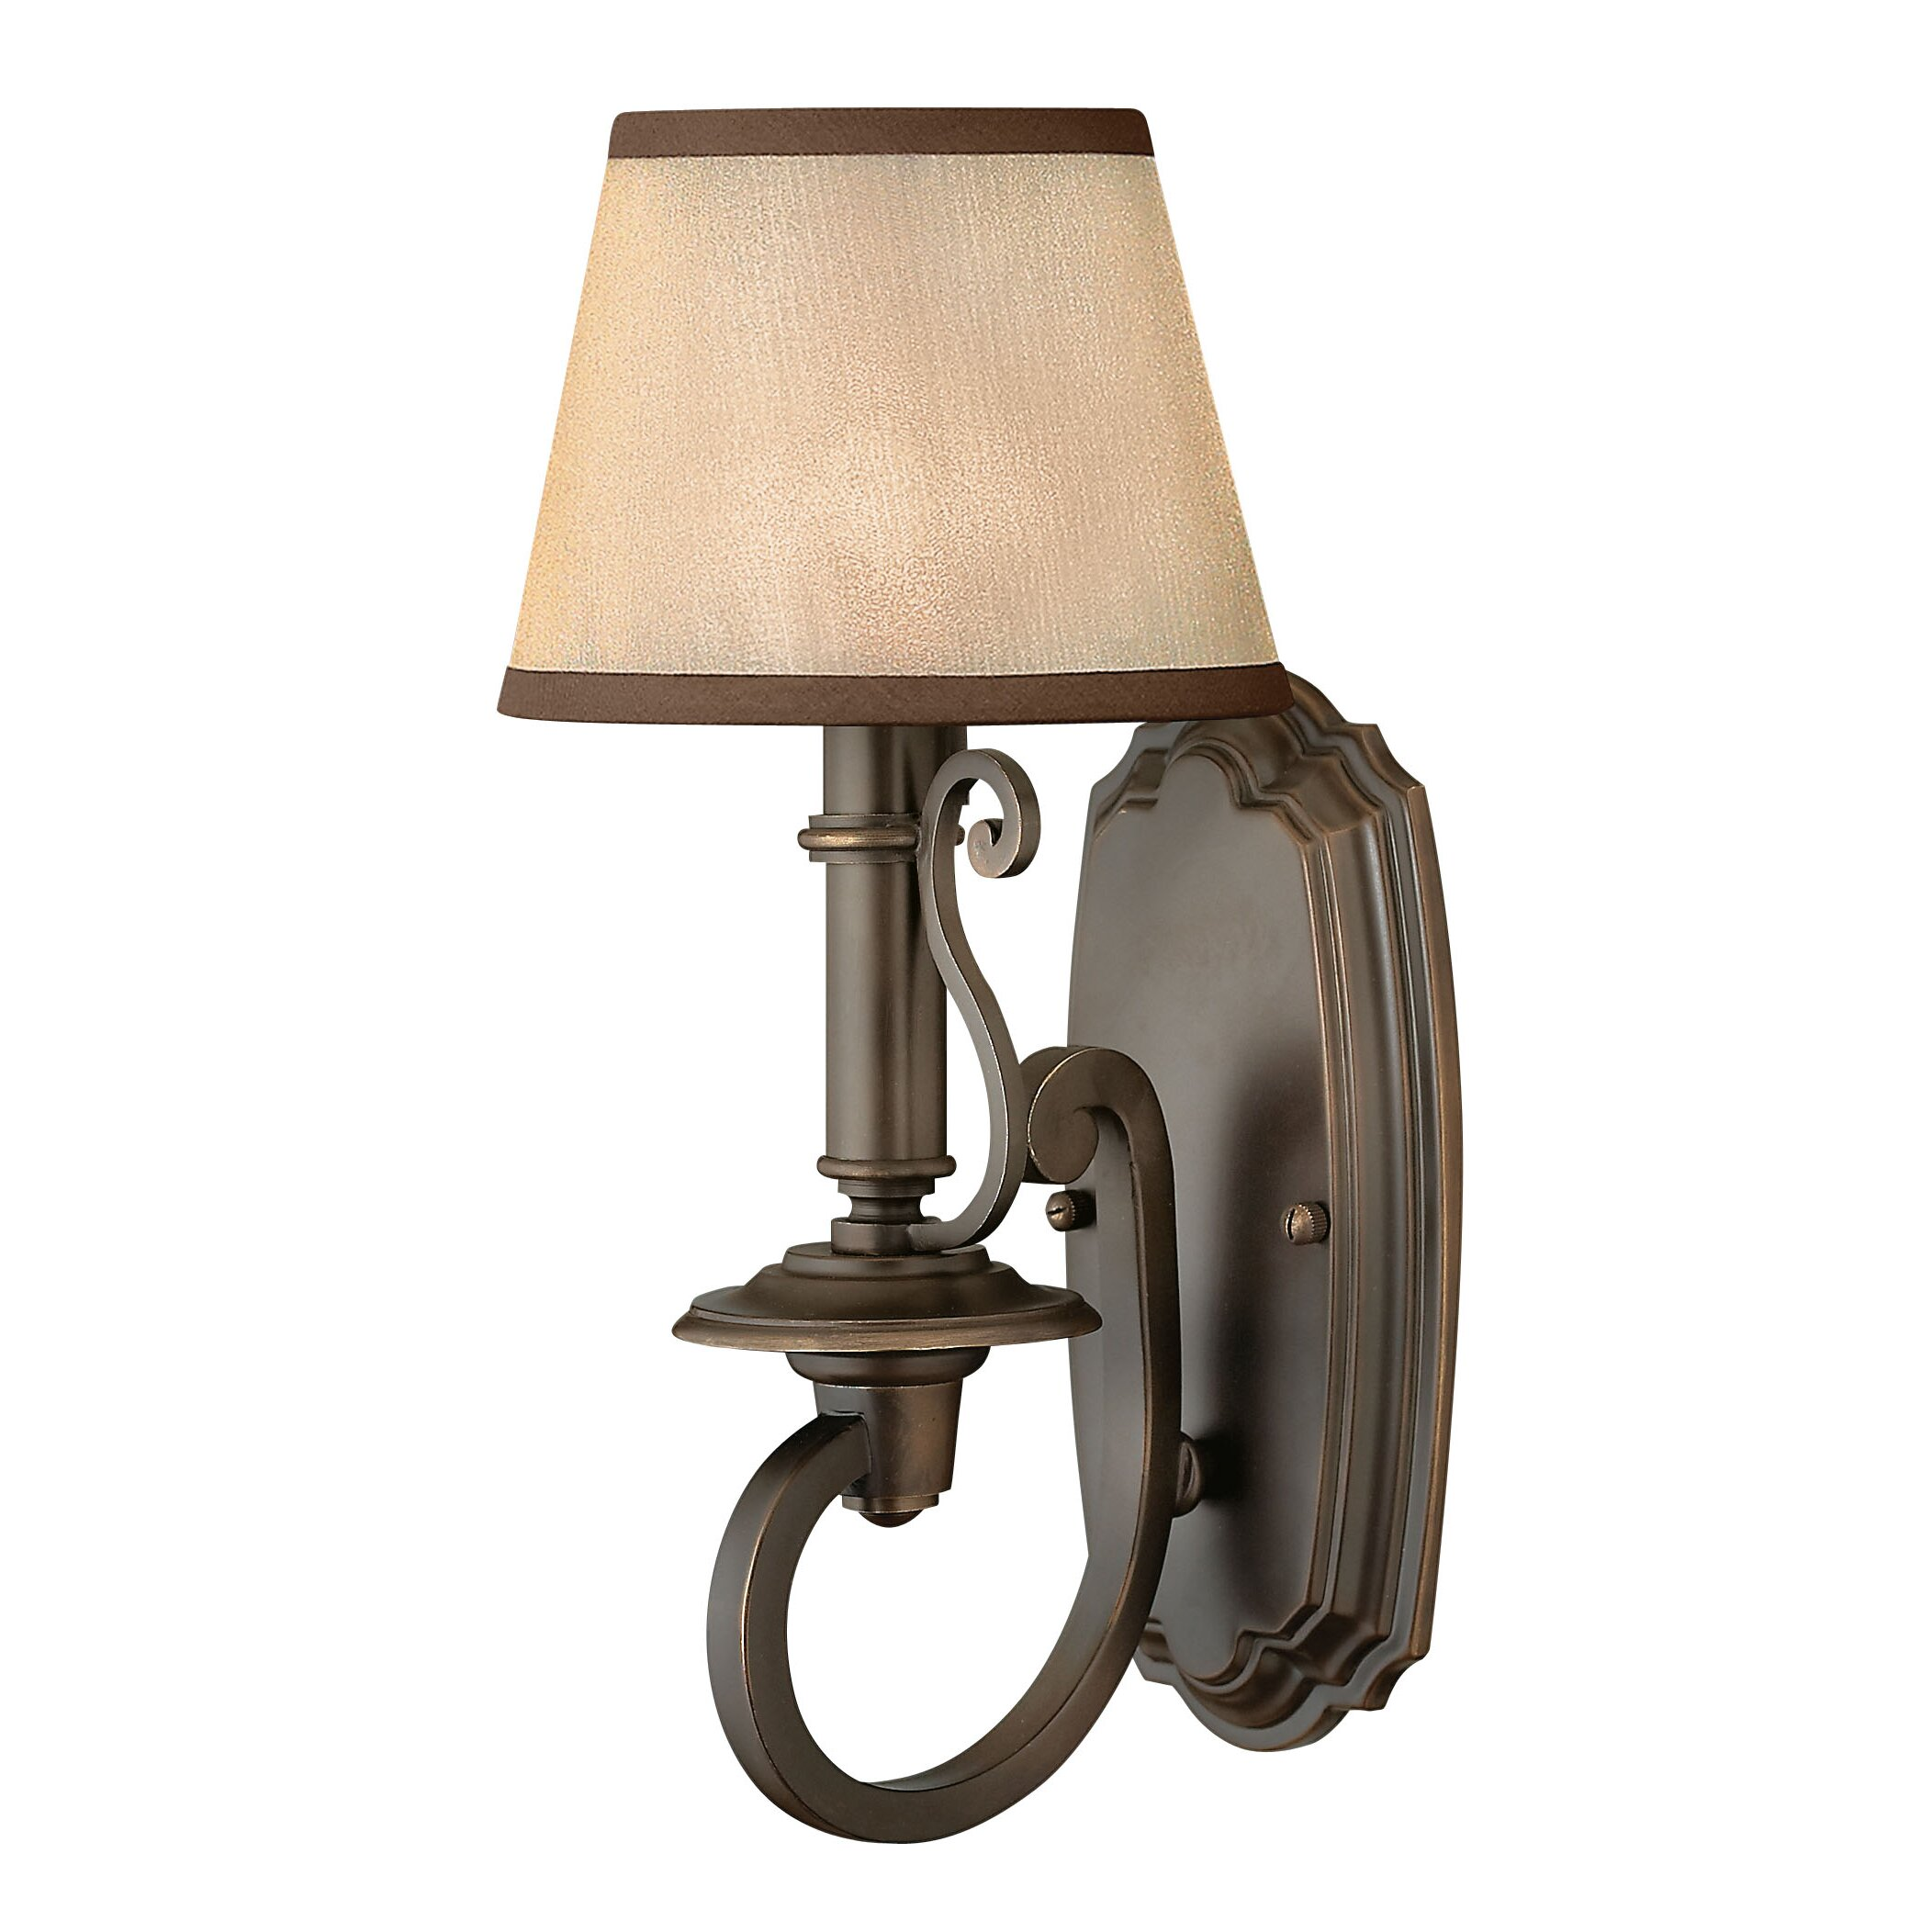 Wall Sconces At Wayfair : Hinkley Lighting Plymouth 1 Light Wall Sconce & Reviews Wayfair